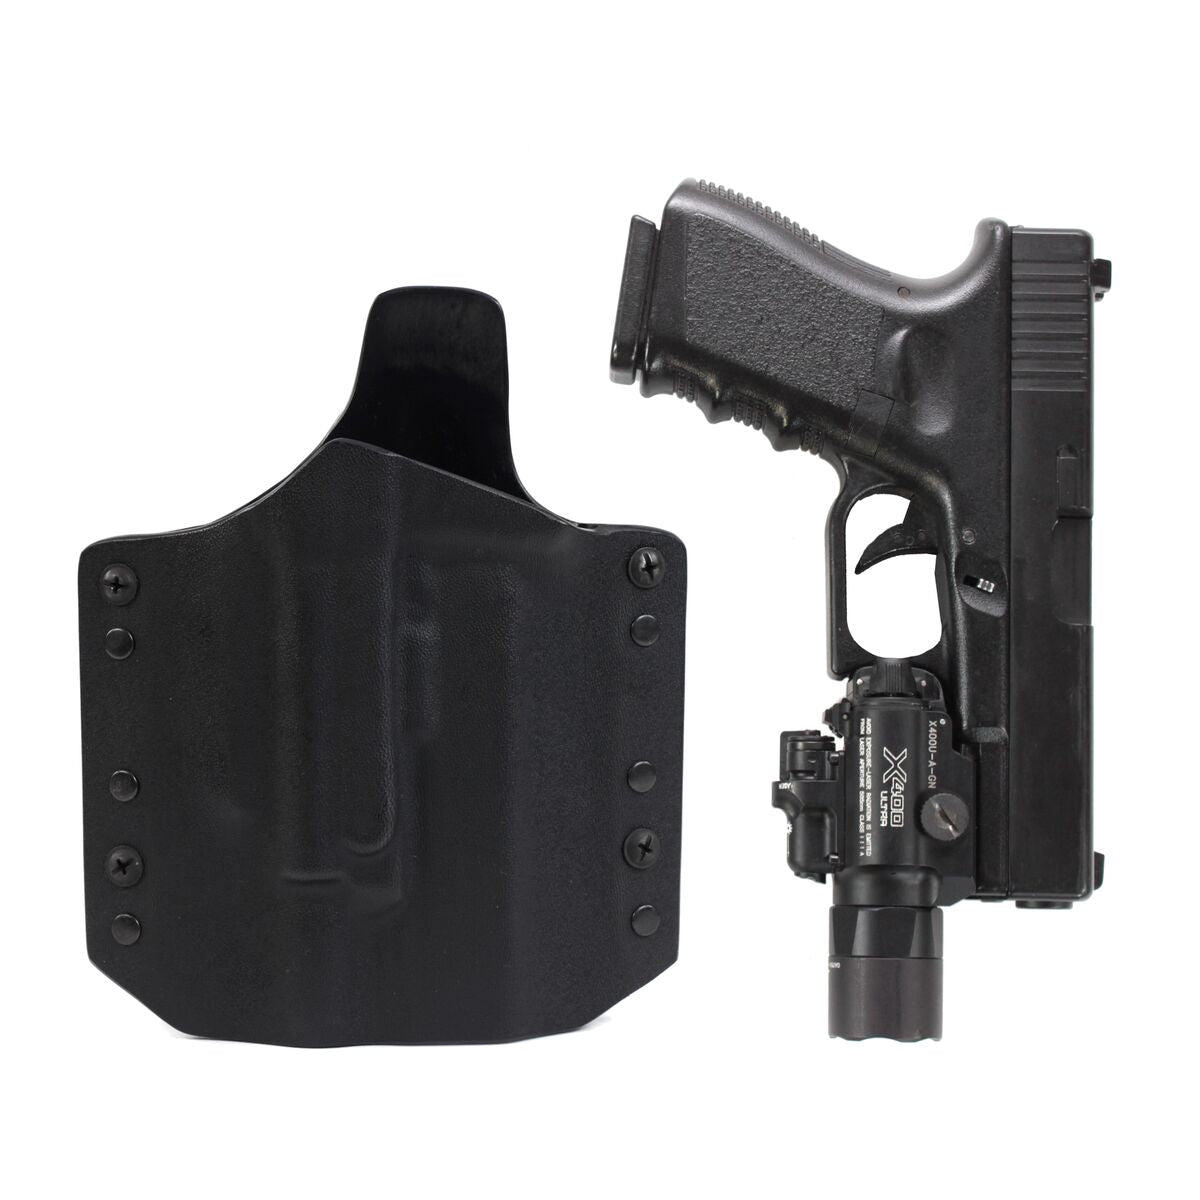 Ares Kydex Holster Glock-17/19 X300/X400 Weapon Lights – Black Bear Gear